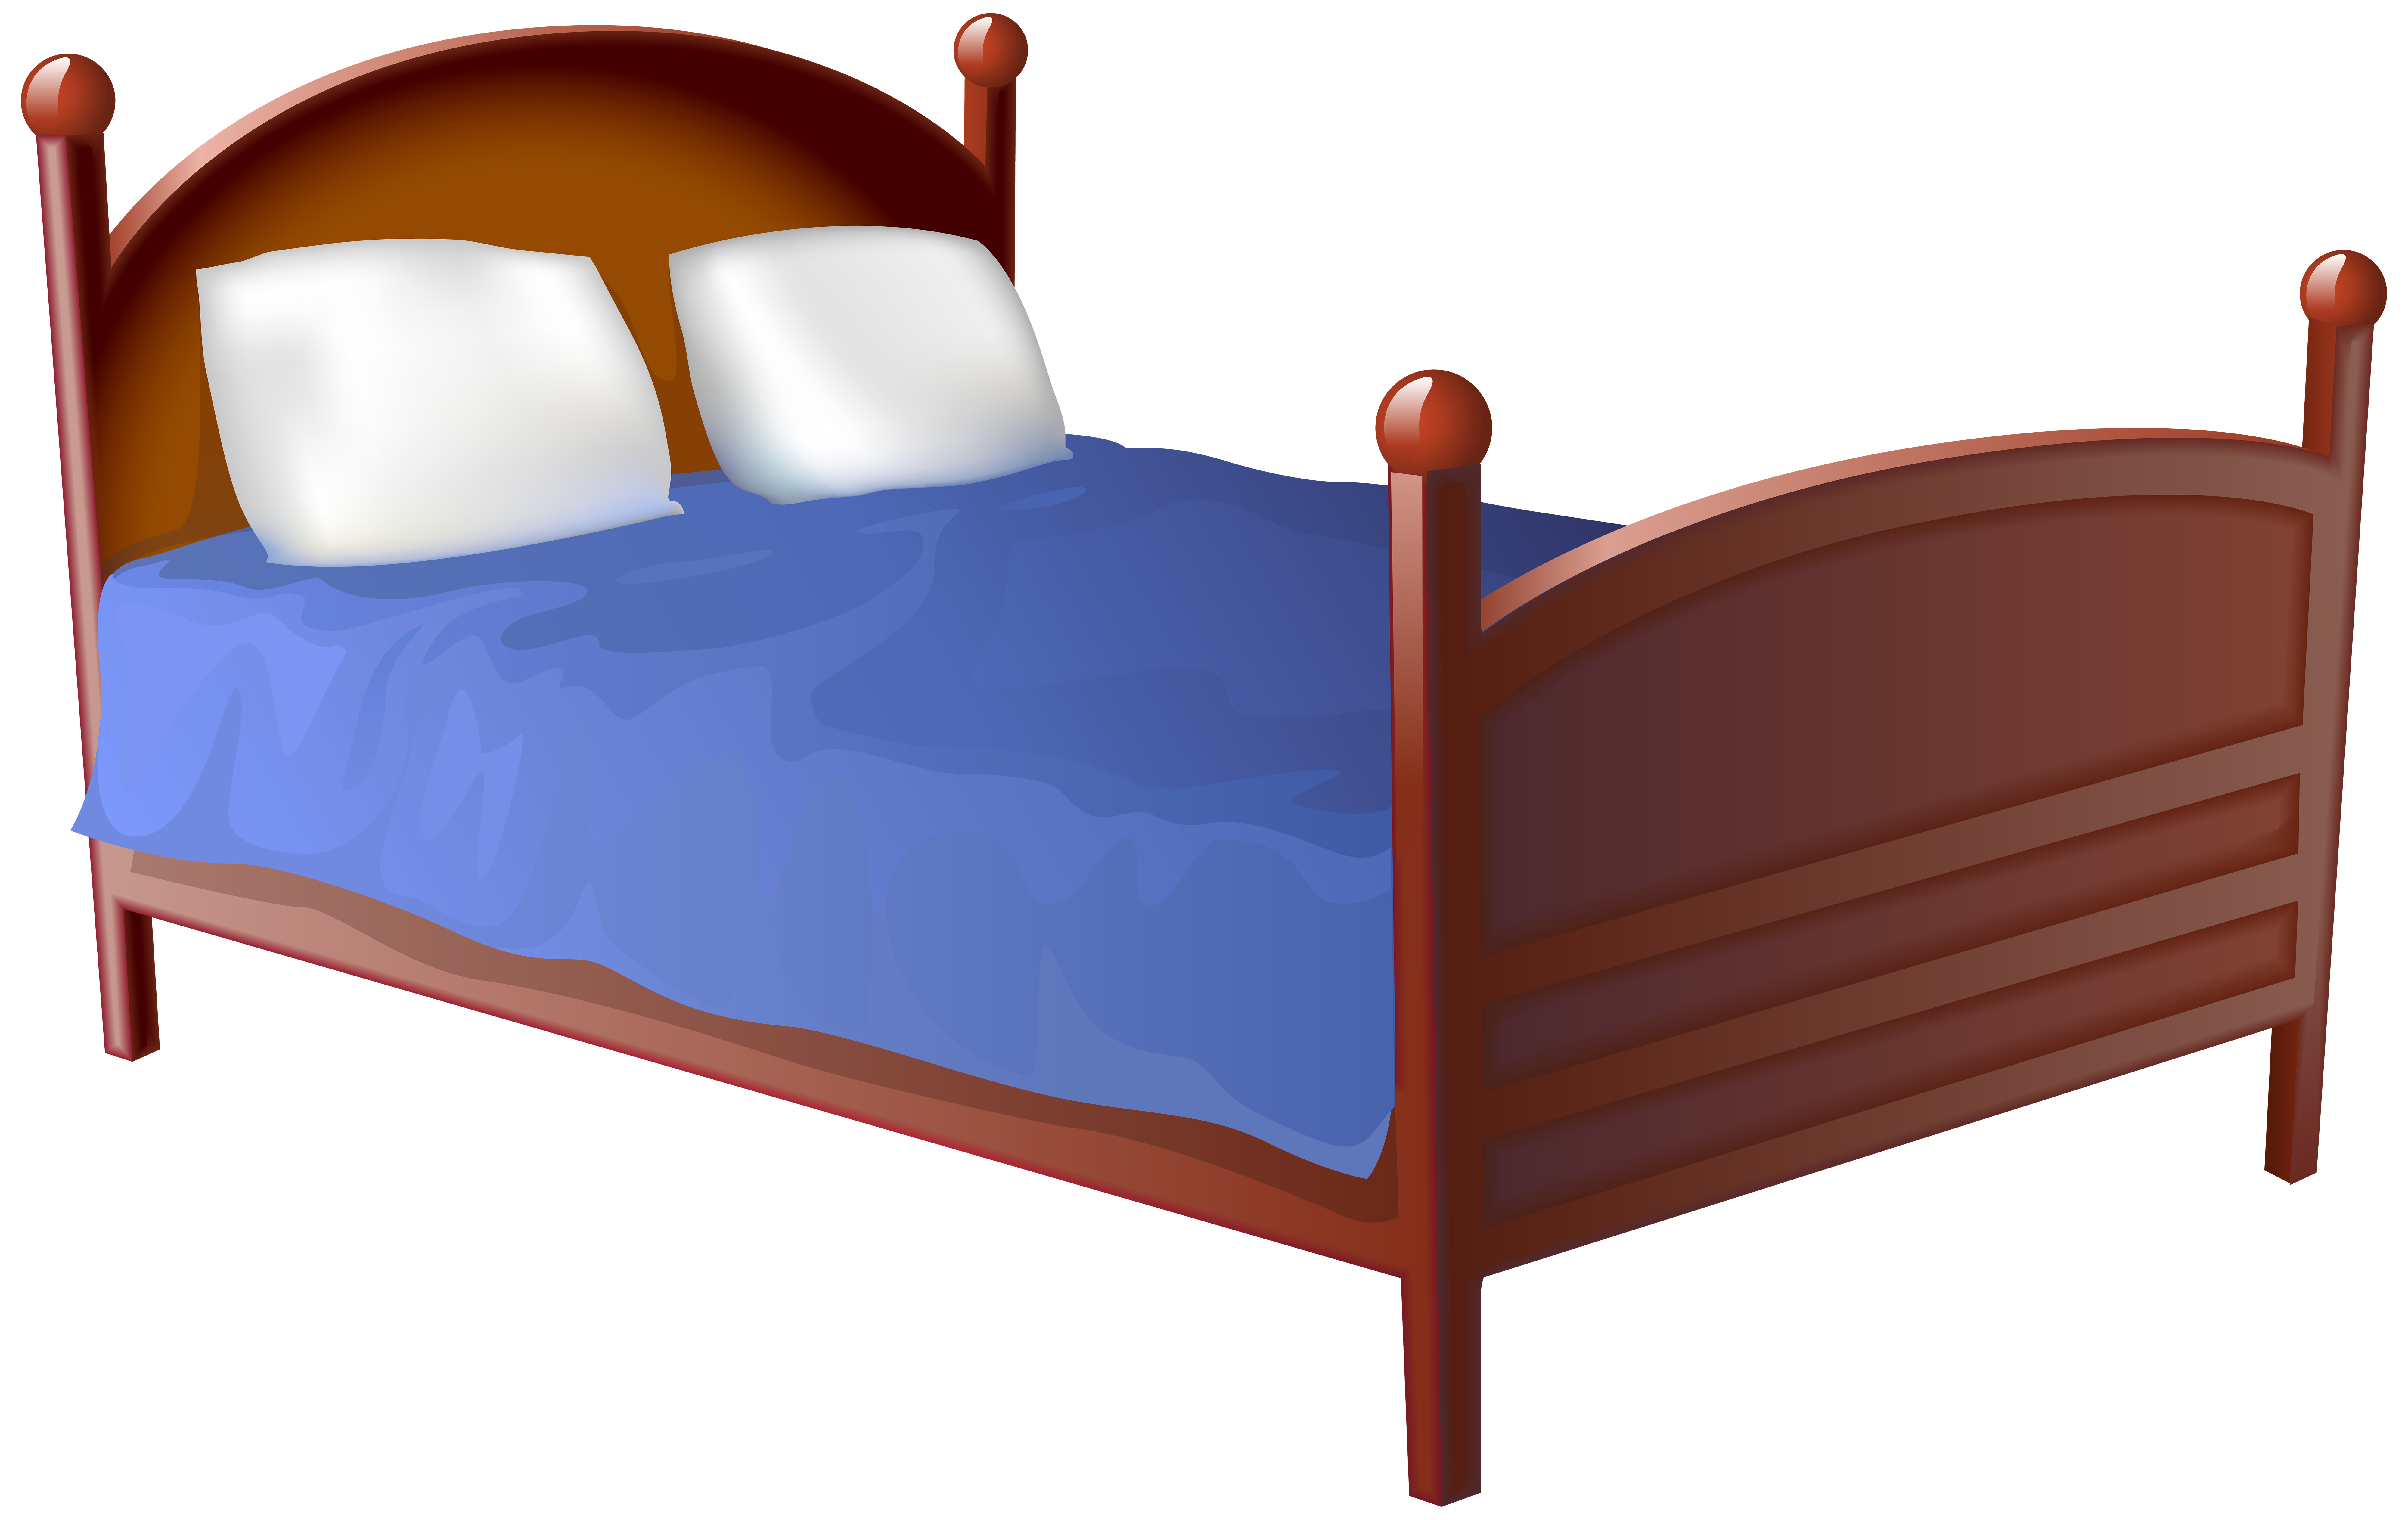 Bed clipart bed frame. Transparent png clip art